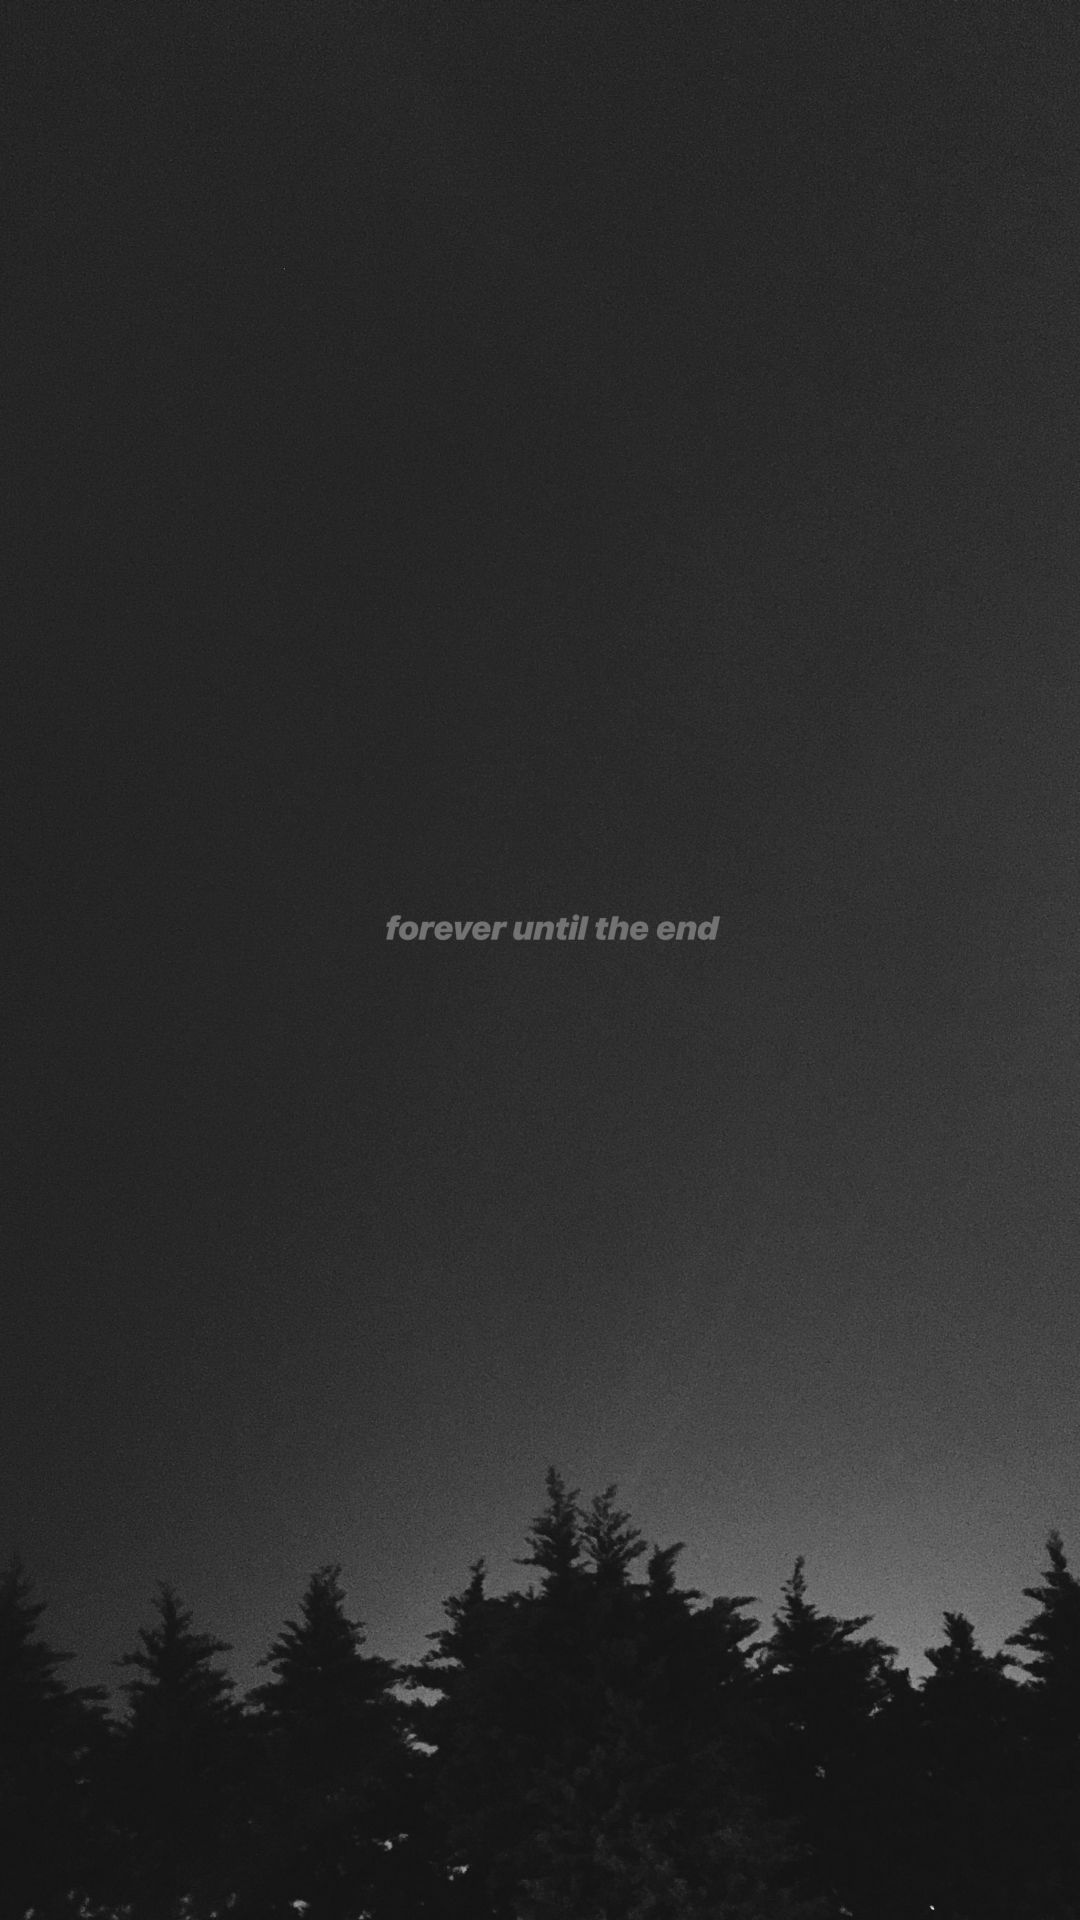 List of the New of Black Wallpaper Quotes for Xiaomi 2020 from 99images.com